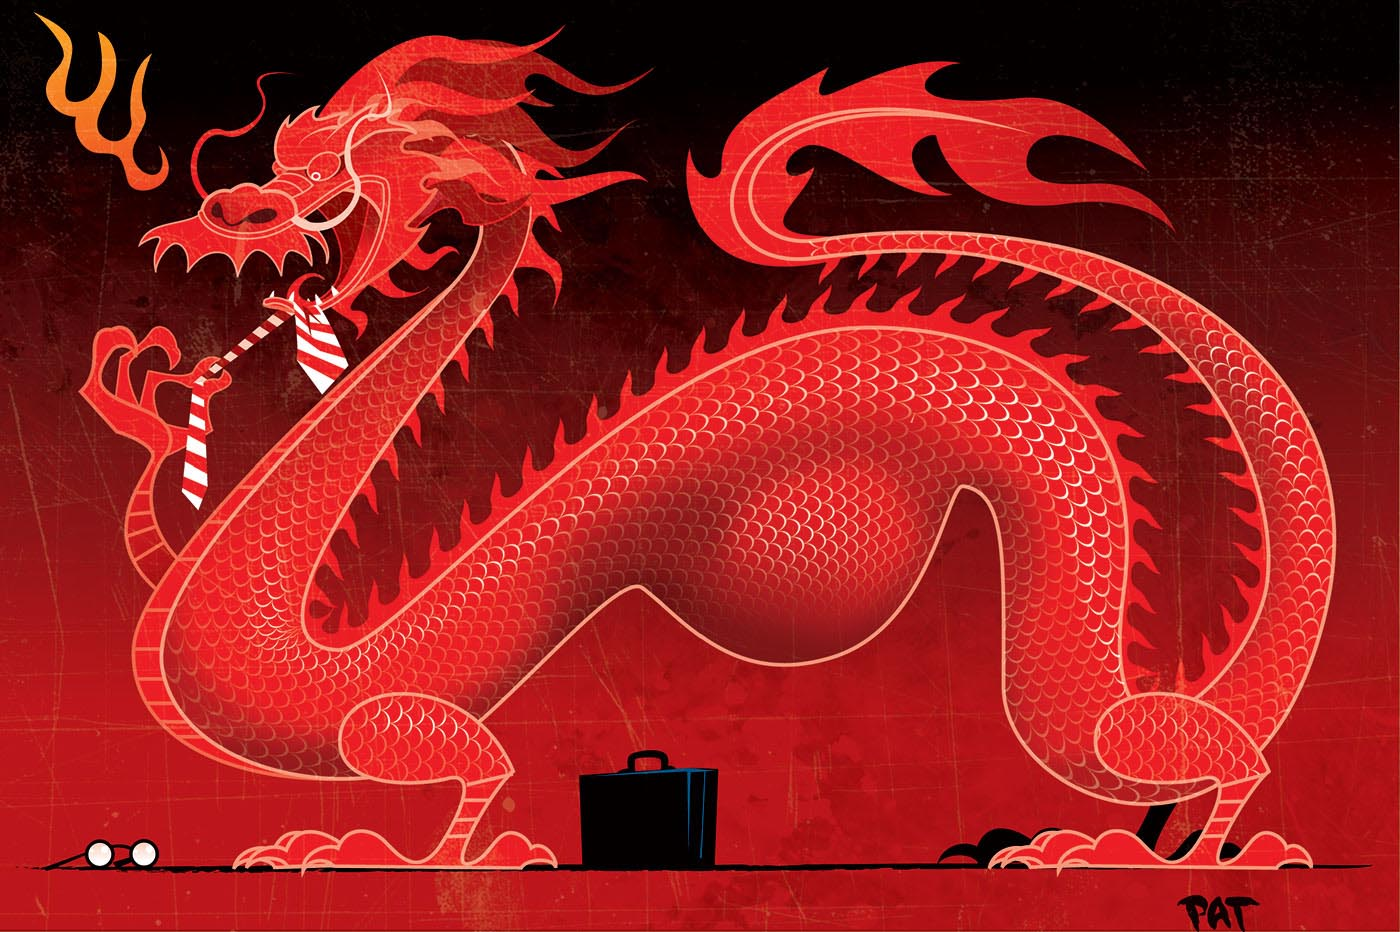 A colour illustration depicting a stylised red Chinese dragon. The dragon is seen side on, facing the left side of the image. It has a long, curved body. A briefcase and a pair of glasses can be seen on the ground under the dragon. A large lump in the dragon suggests it has just eaten a business person. The dragon appears to be flossing its teeth with a red and white striped tie. - click to view larger image